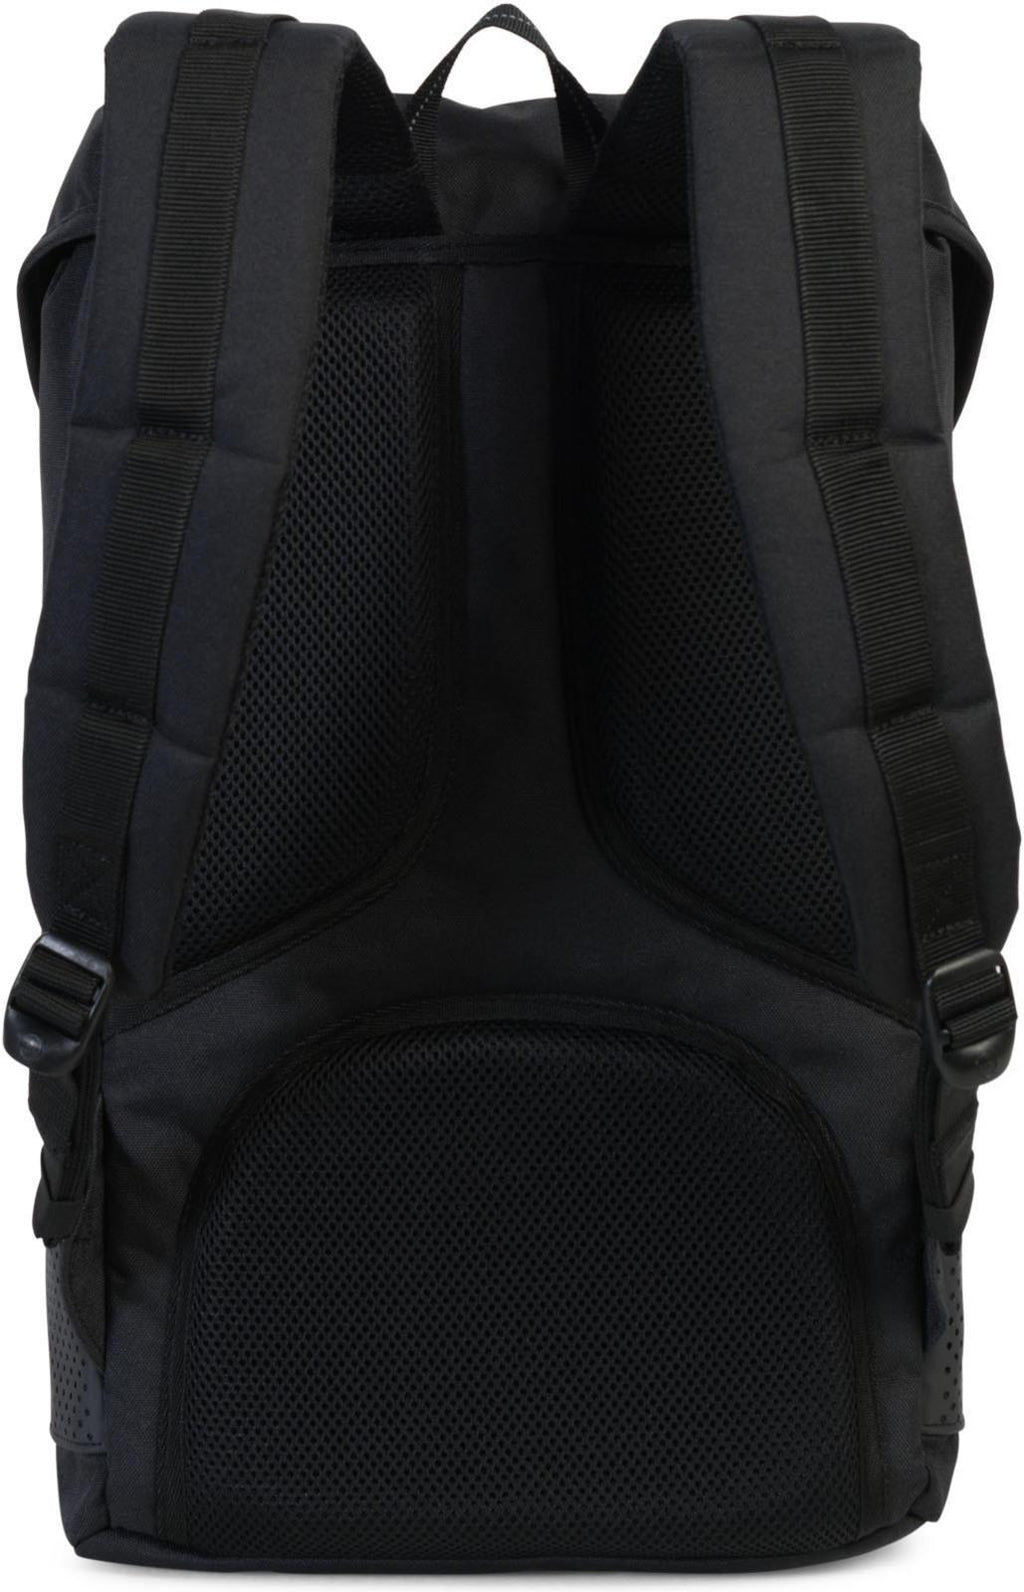 Herschel Supply Co Little America Aspect Backpack Bag Black